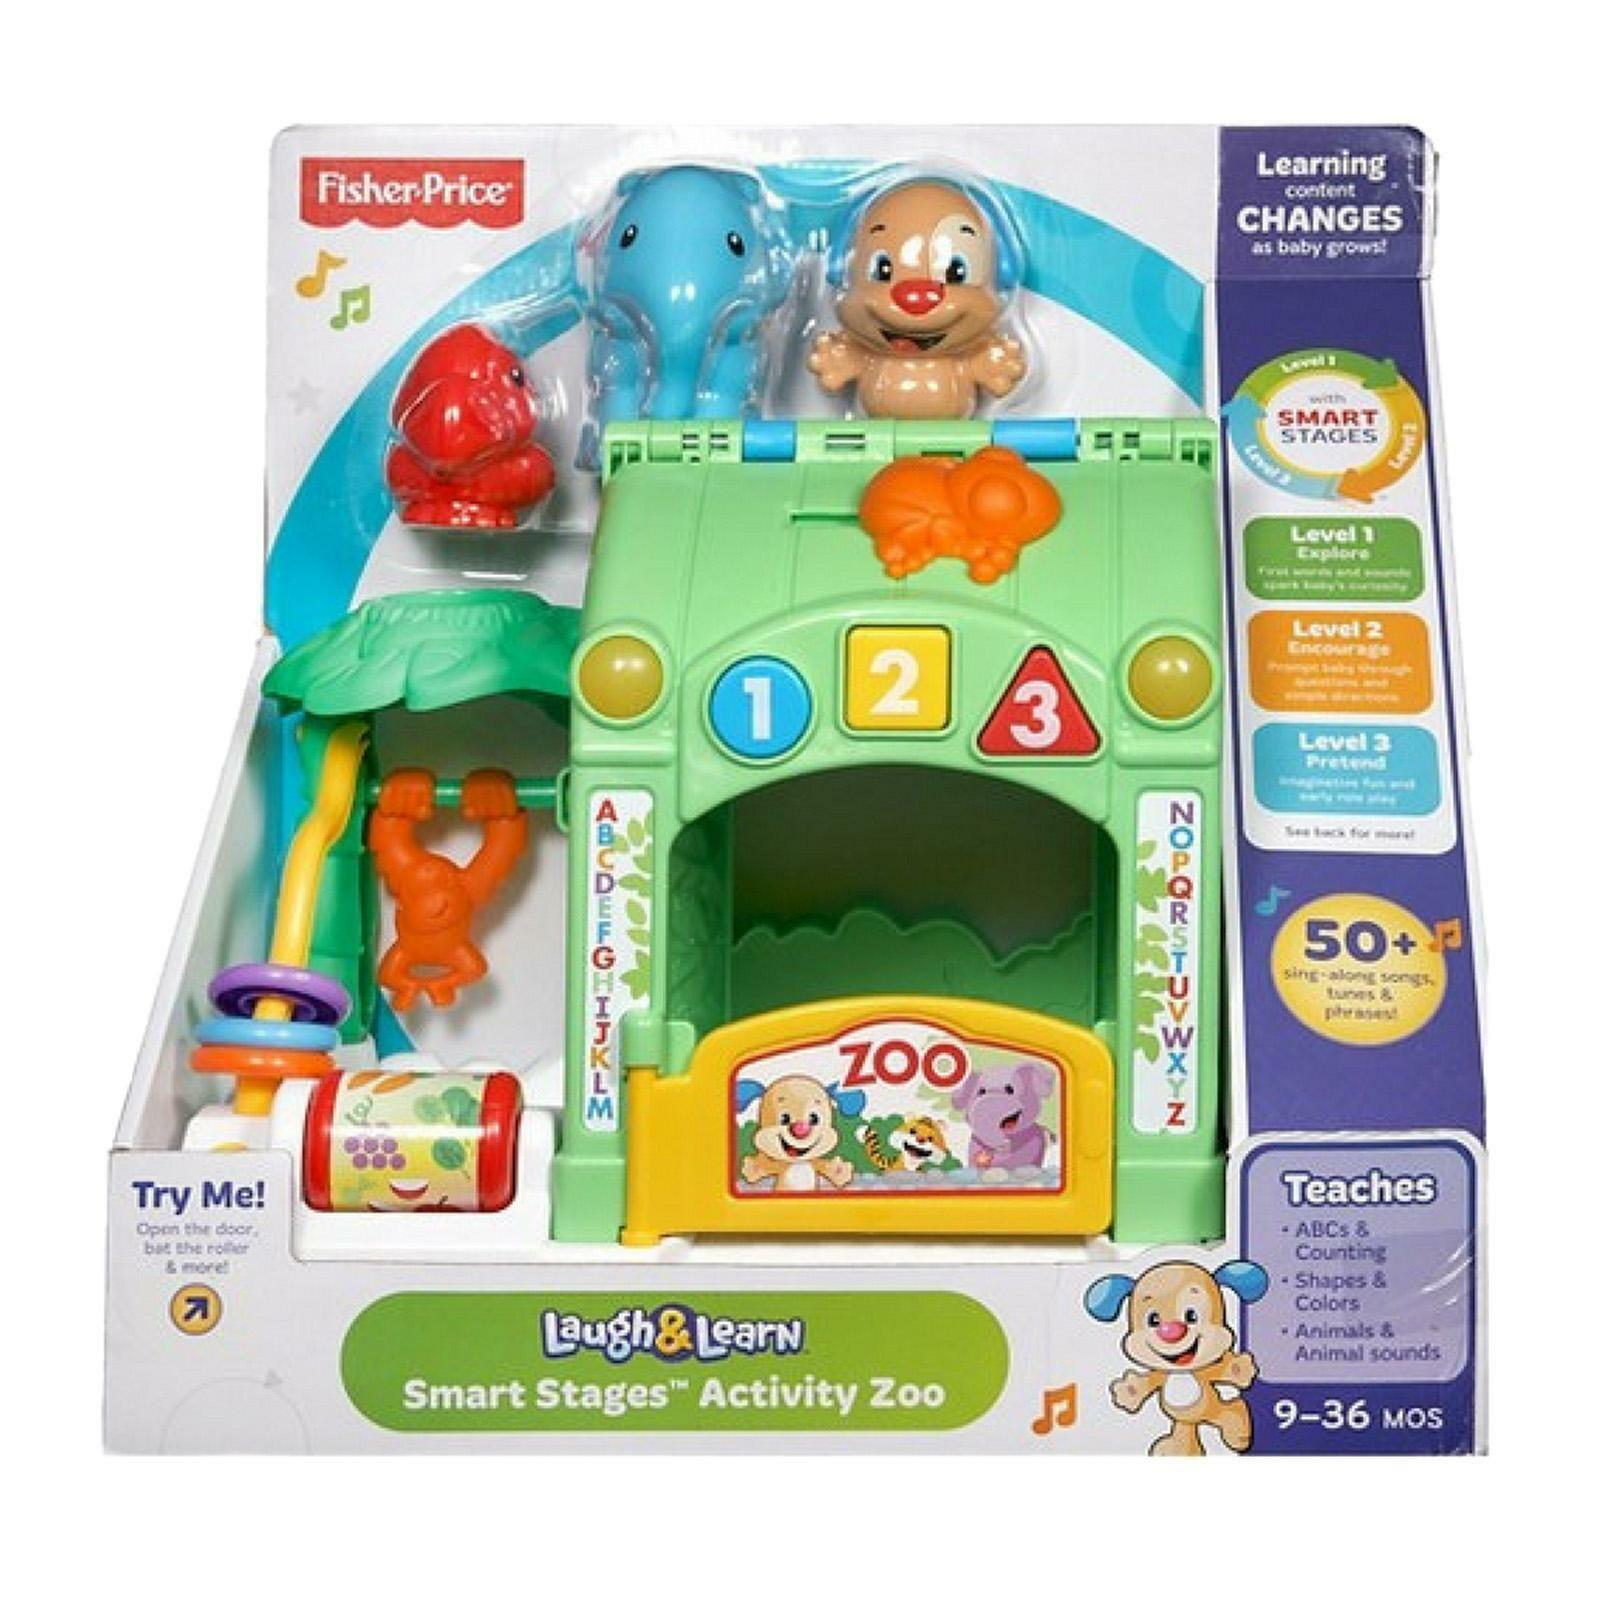 Fisher Price Laugh & Learn Smart Stages Activity Zoo CGV25 NEW